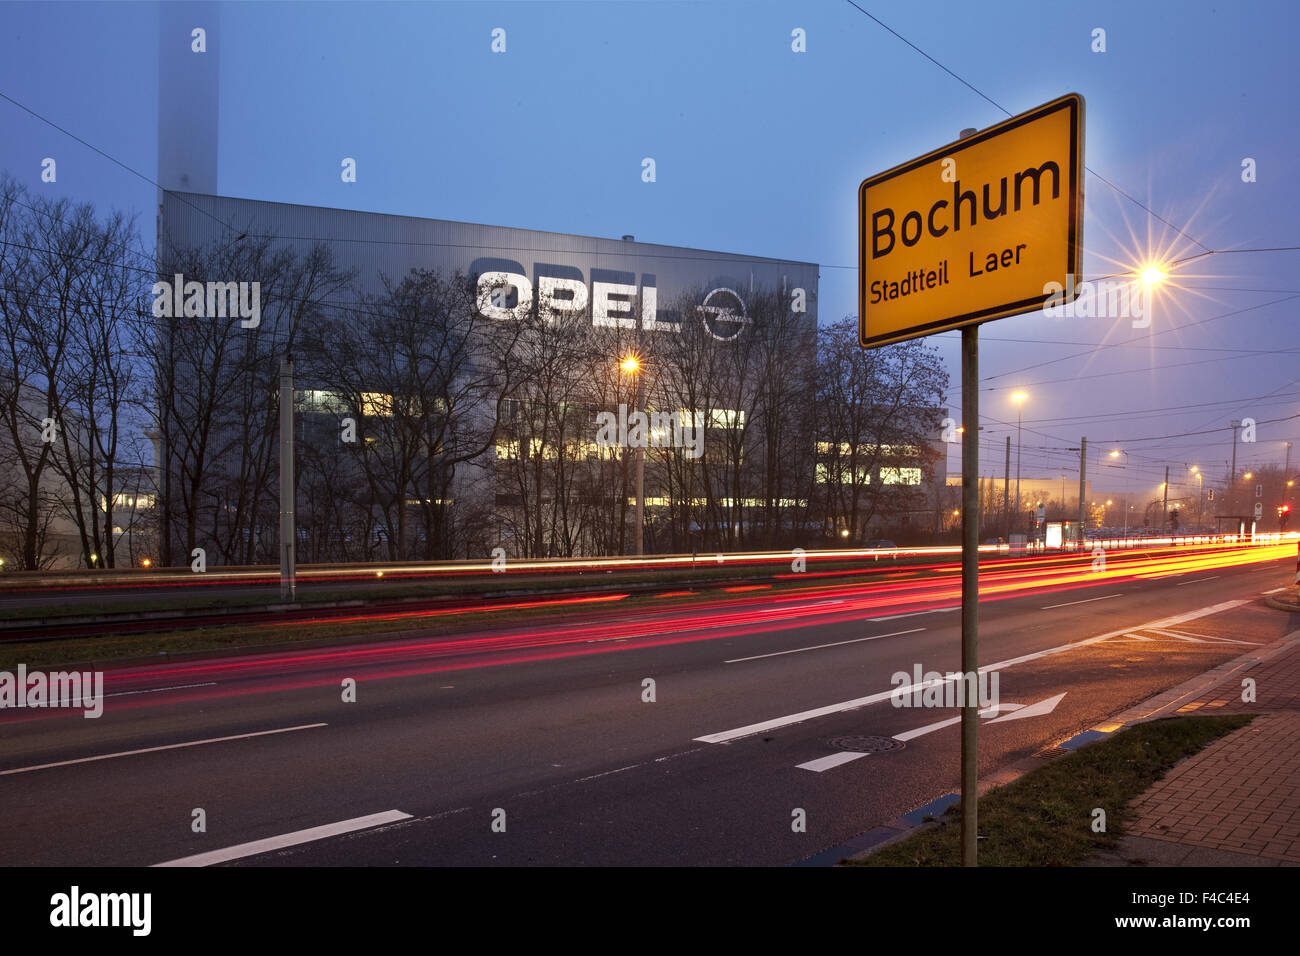 Opel factory with town sign, Bochum, Germany Stock Photo